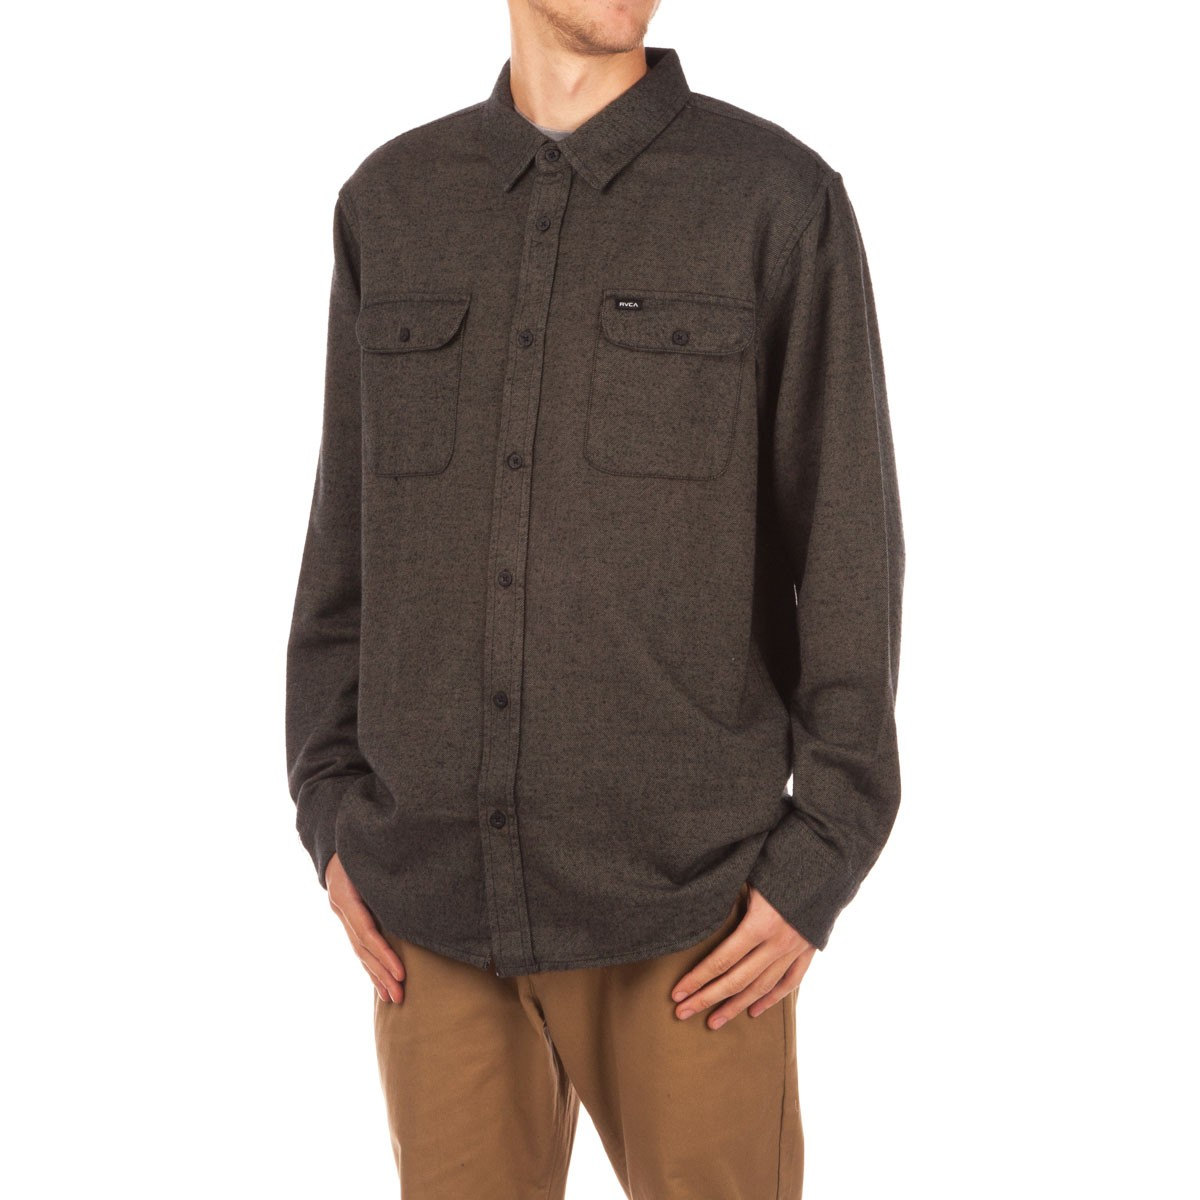 RVCA Coyote Flannel Shirt - Dusty Olive